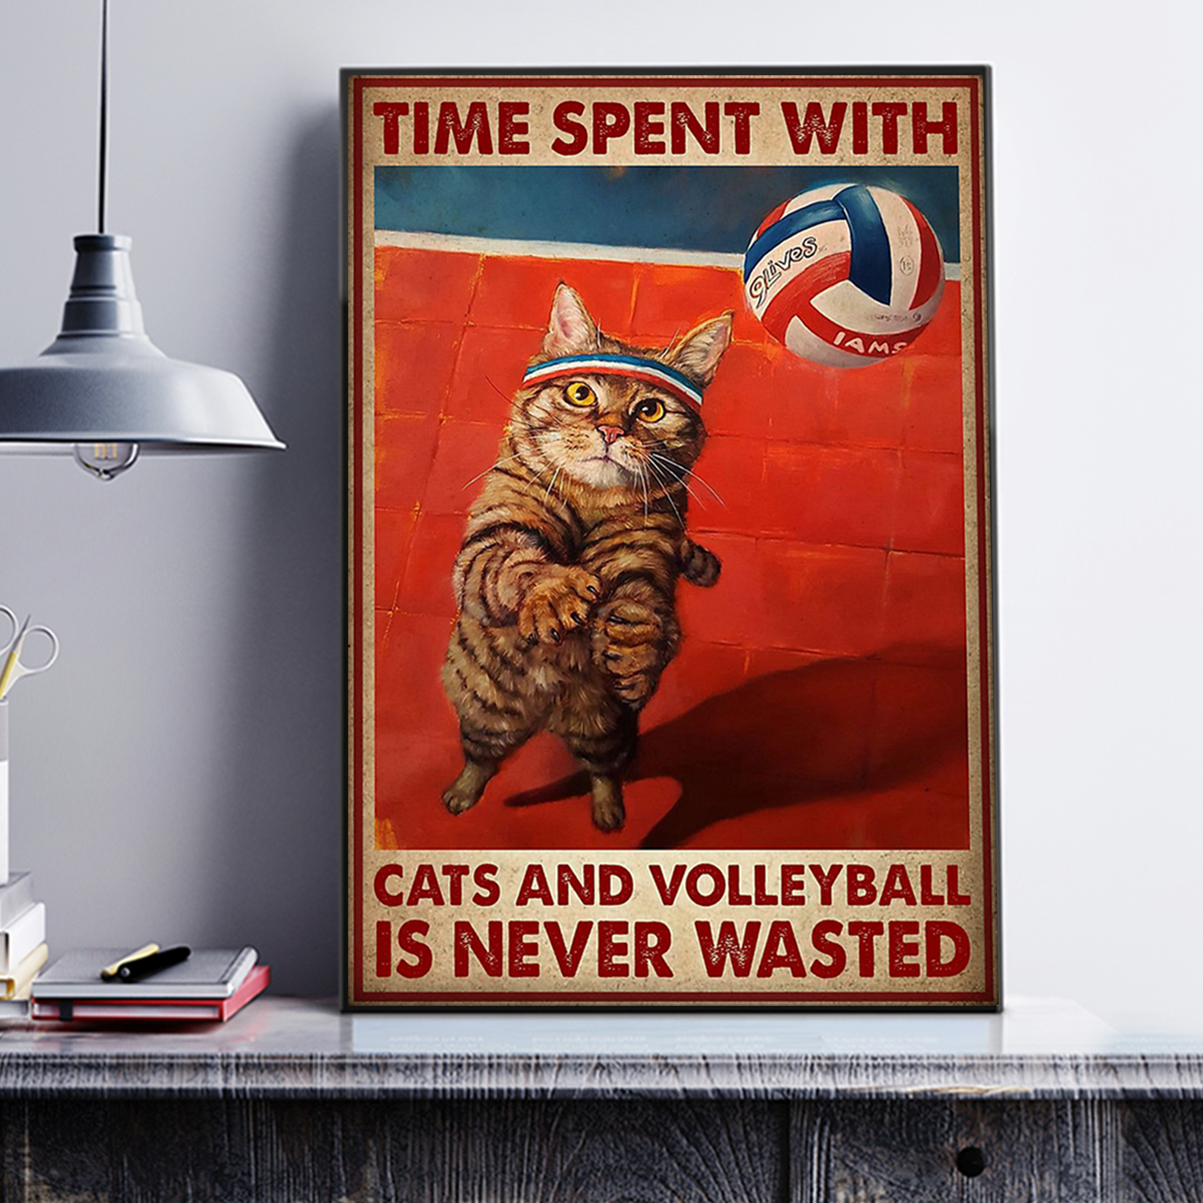 Time spent with cats and volleyball is never wasted poster A1